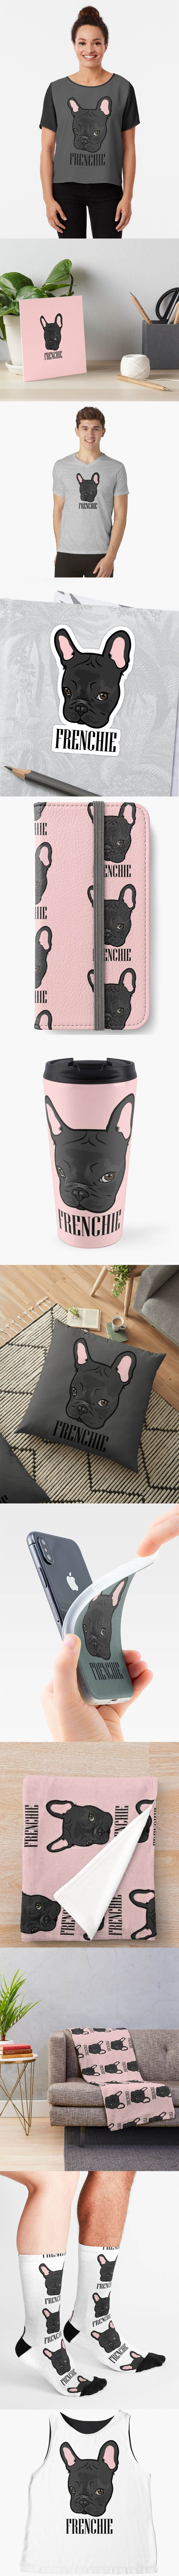 Find your thing only on Redbubble by baby Gnom... #findyourthing #redbubbe #dog #doggo #pet #pets #french bulldog, #fenchie dog,  #frenchie lovers, #frenchie art, #bulldog, #bully, #frenchie, #blackandpinkfranchie, #blackfrenchbulldog, #cutefrenchbulldog